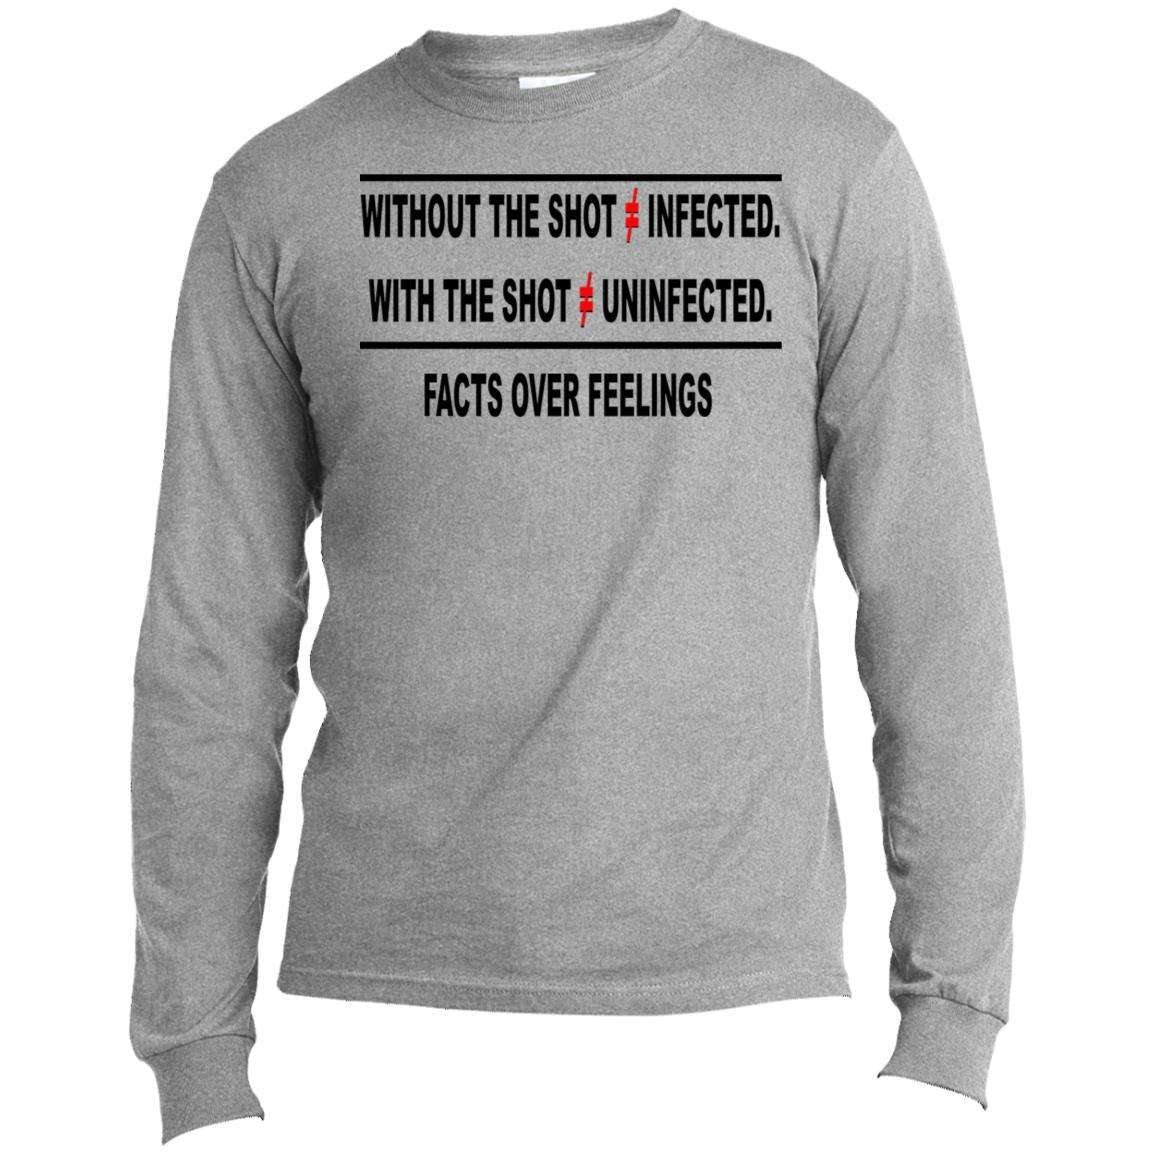 With Or Without The Shot Facts Over Feelings Long Sleeve V2 T Shirt (4 Variants)